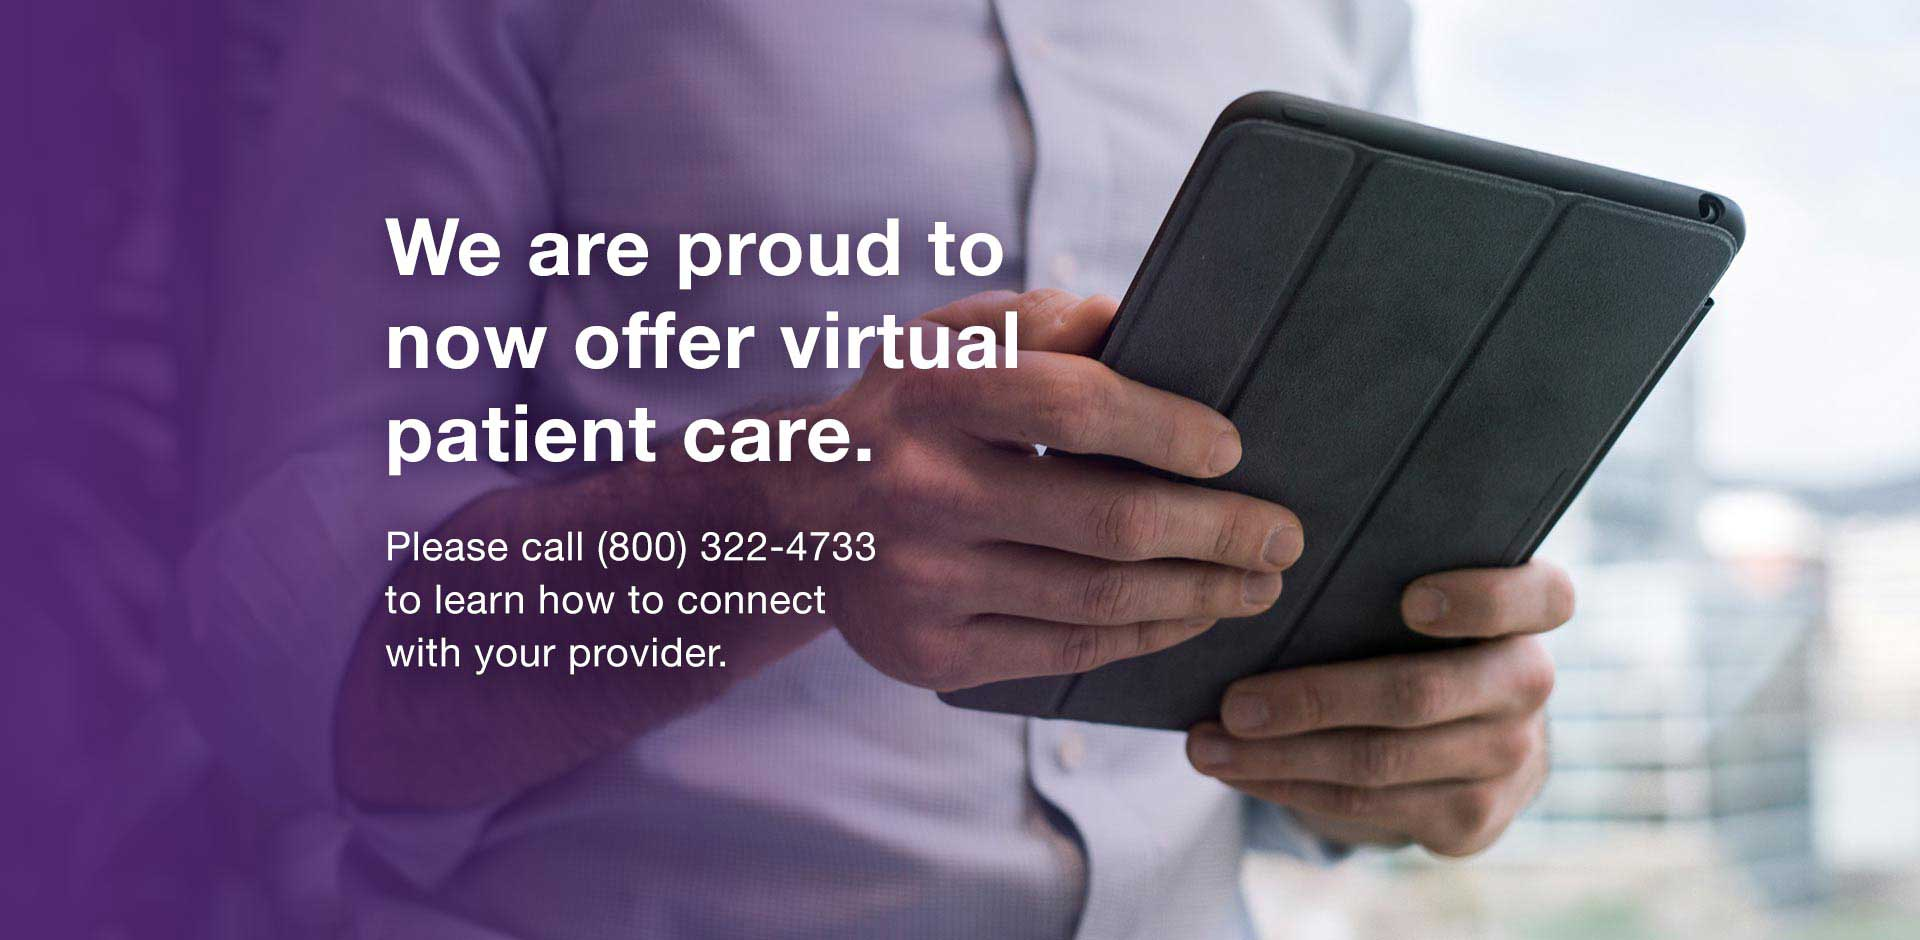 We are proud to now offer virtual patient care. Please call (800)322-4733 to learn how to connect with your provider.